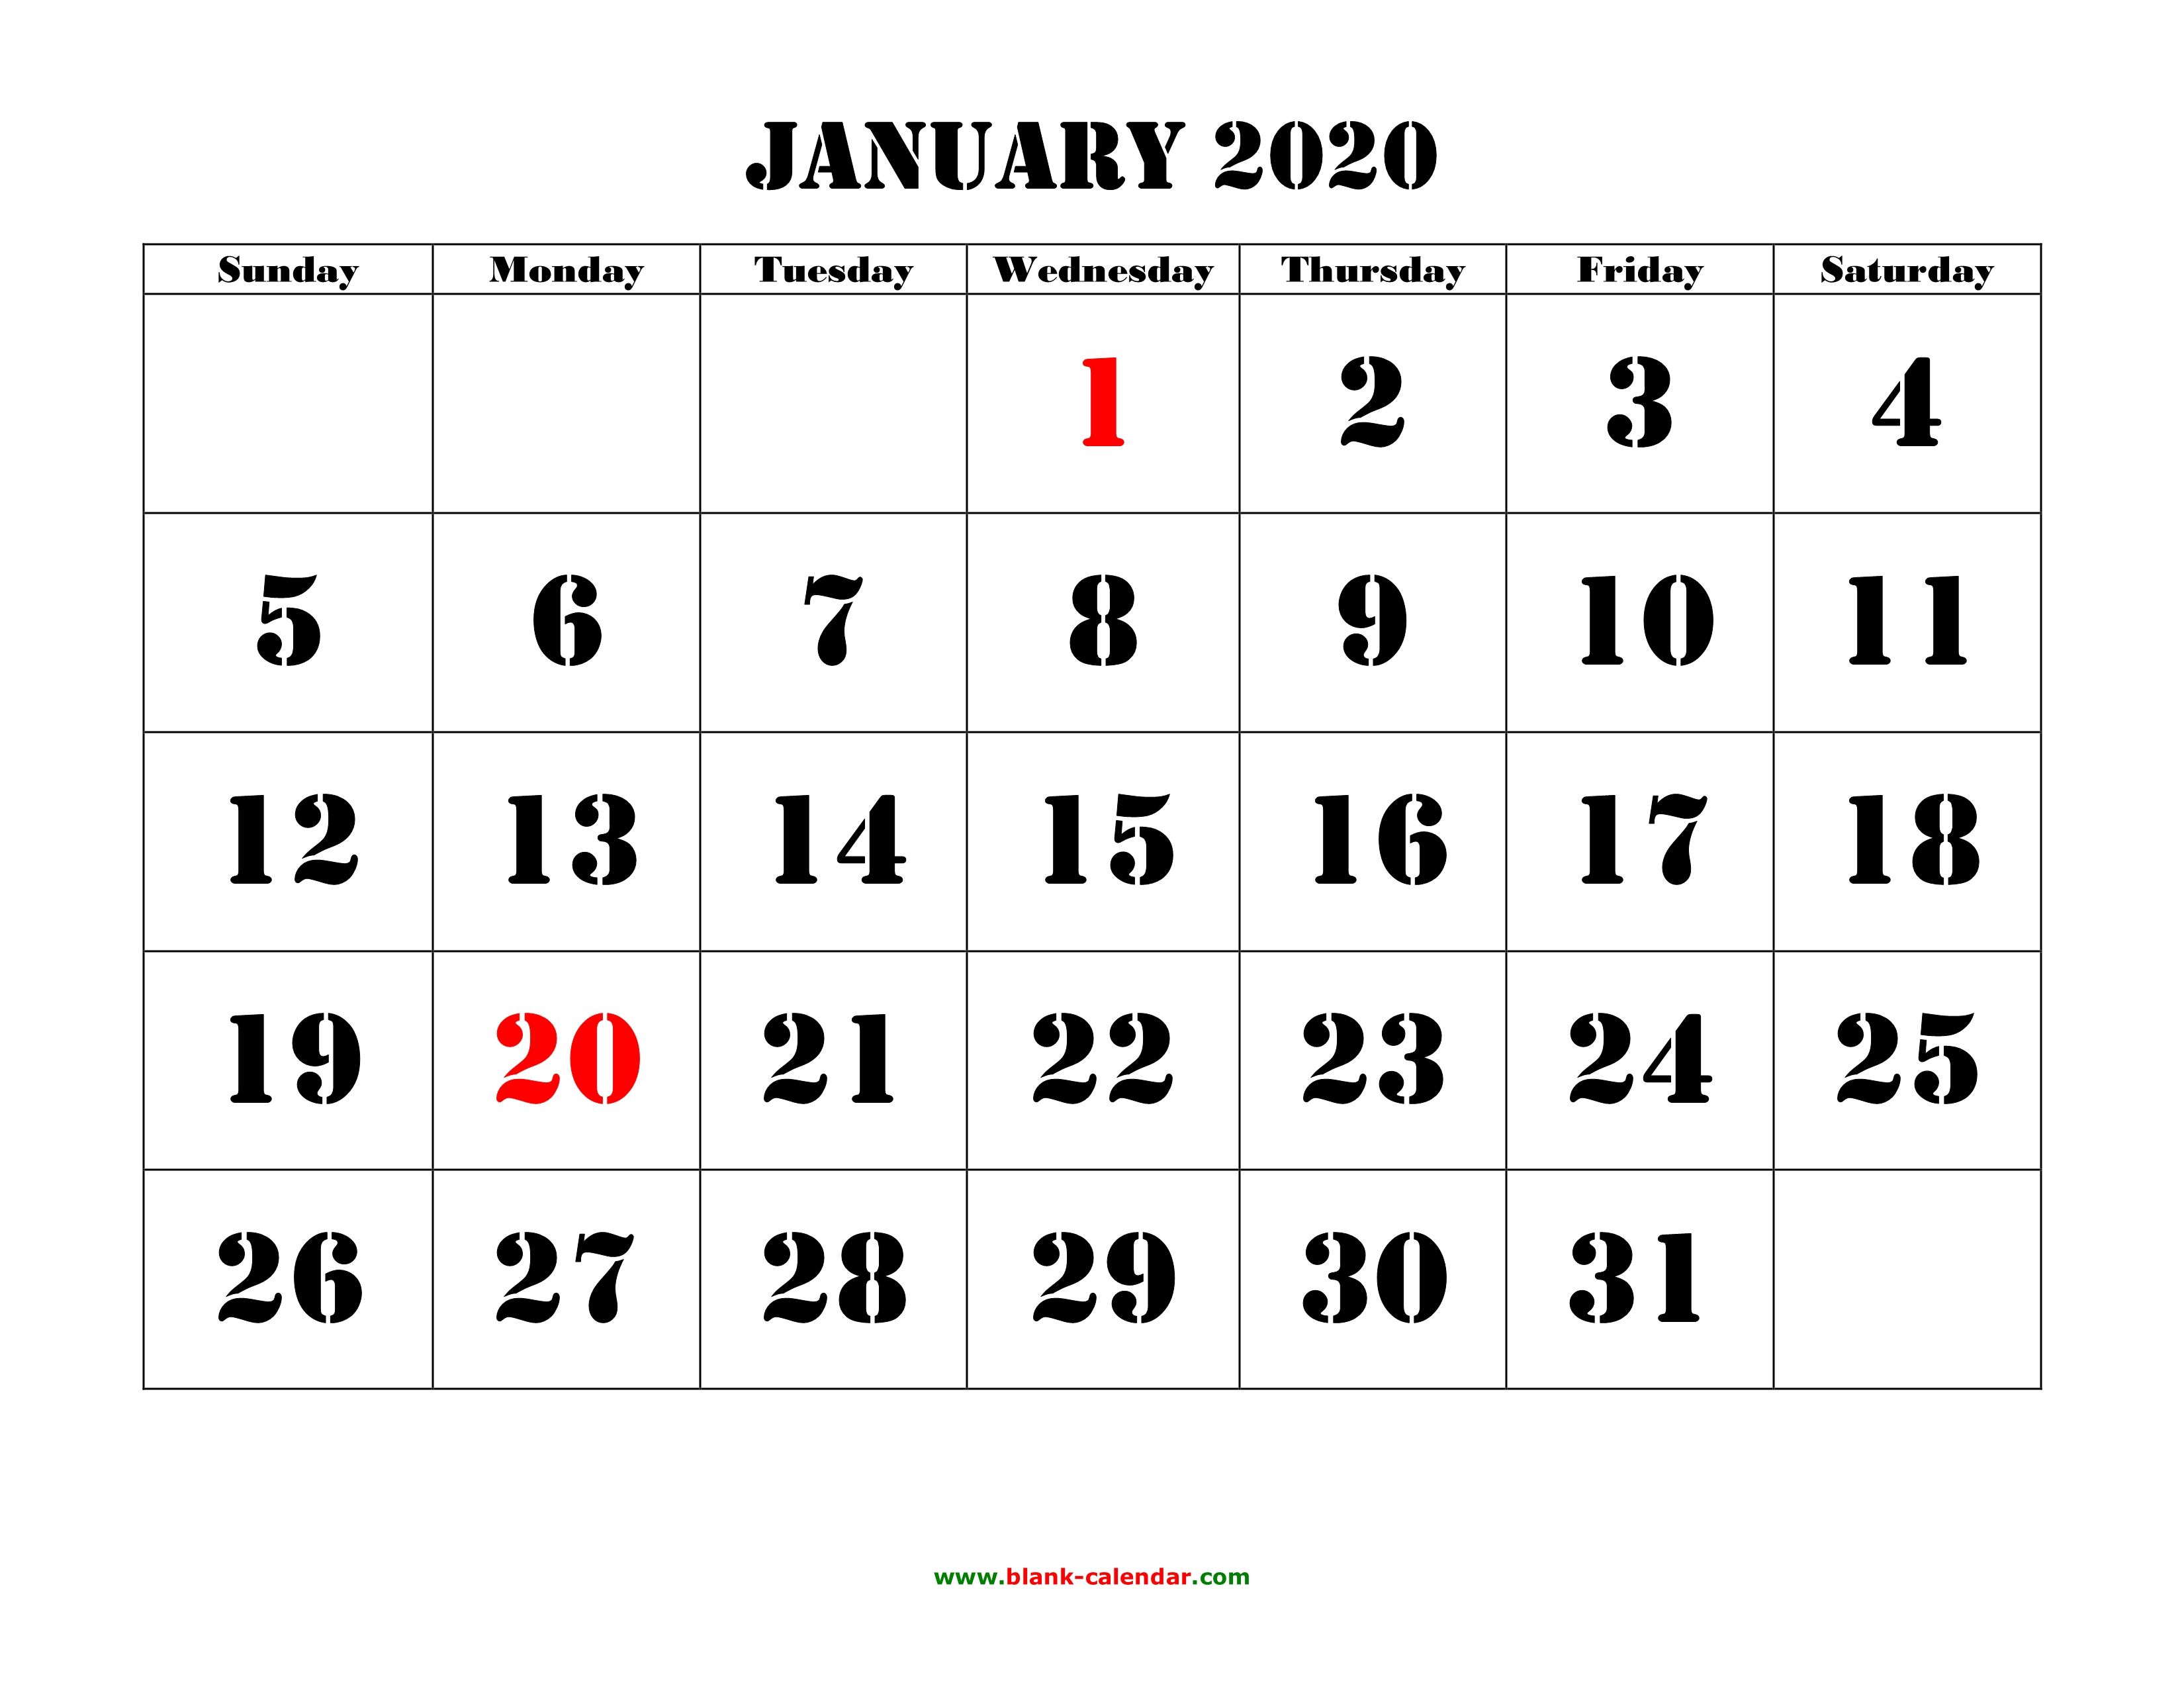 Monthly Calendar To Print 2020 Free Download Printable Calendar 2020, large font design